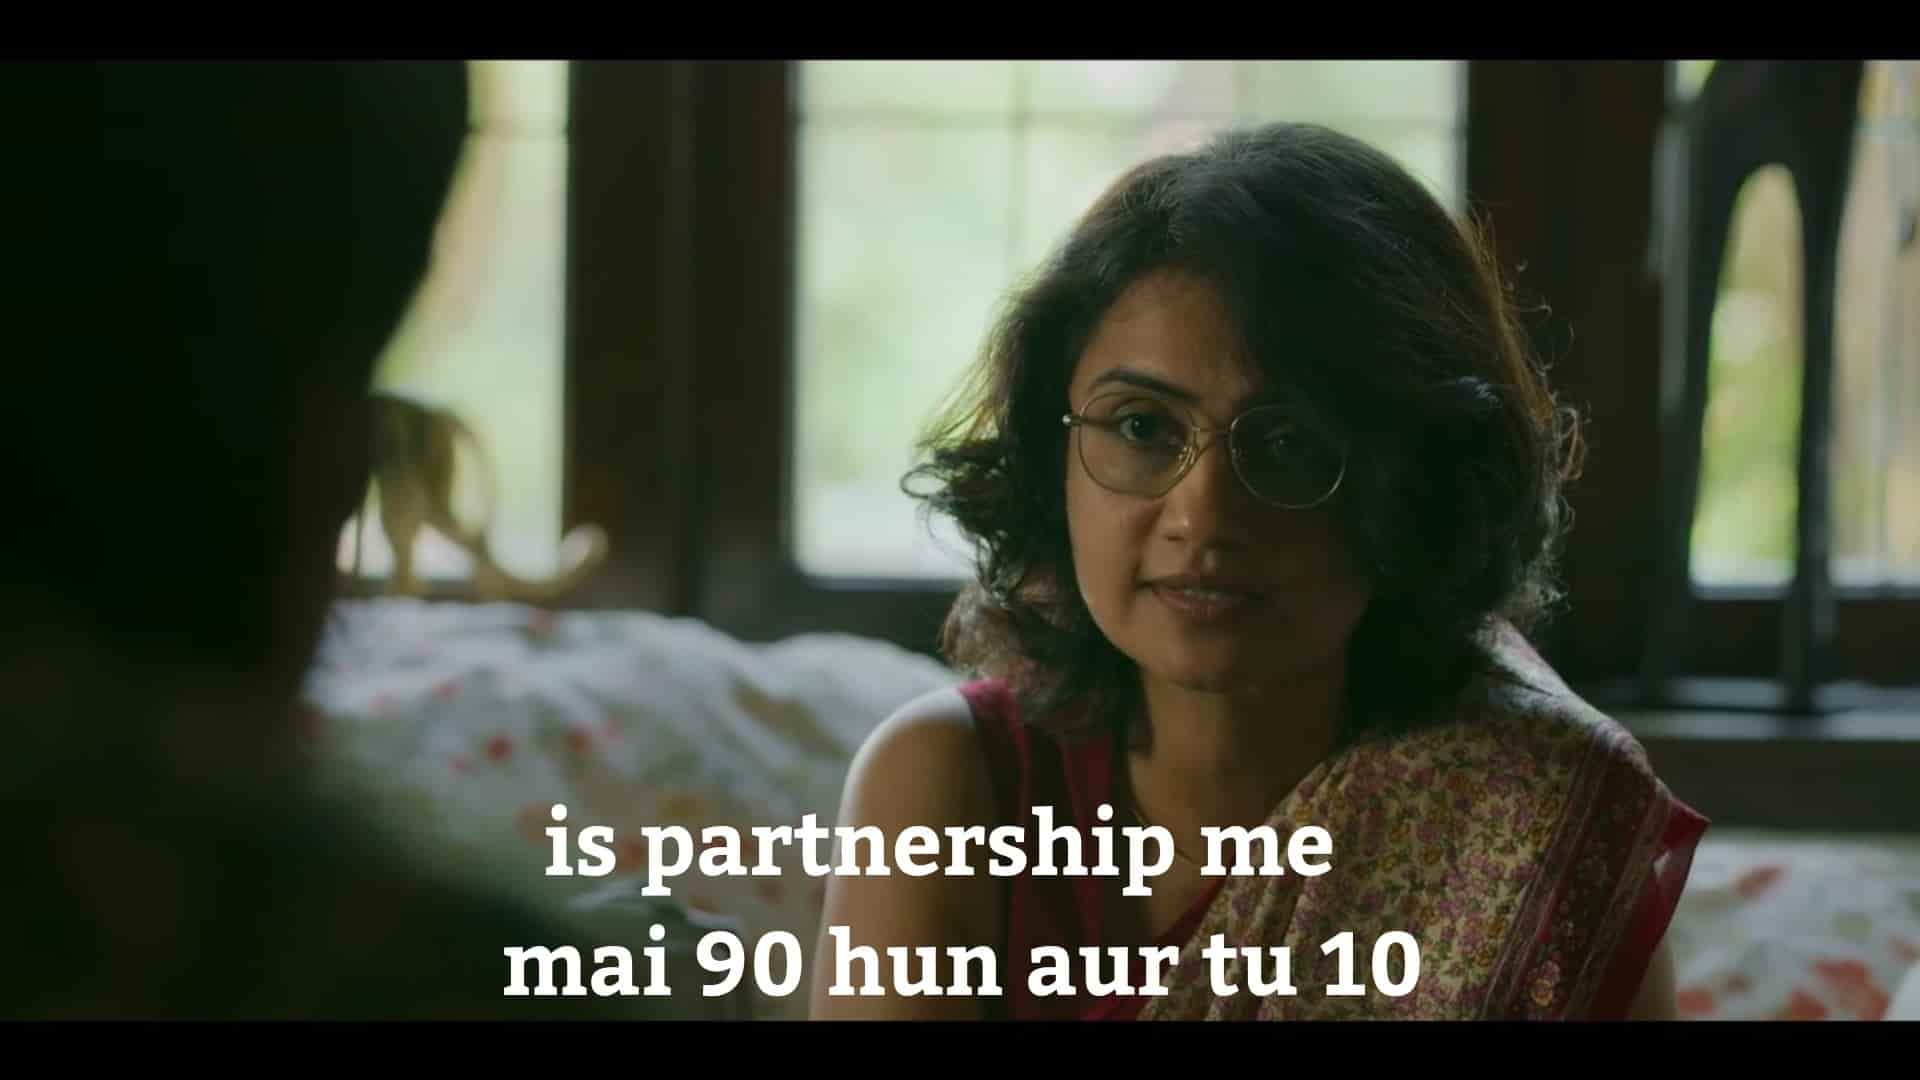 Sacred Games 2 Is Partnership Mein Main 90 Aur Tu 10